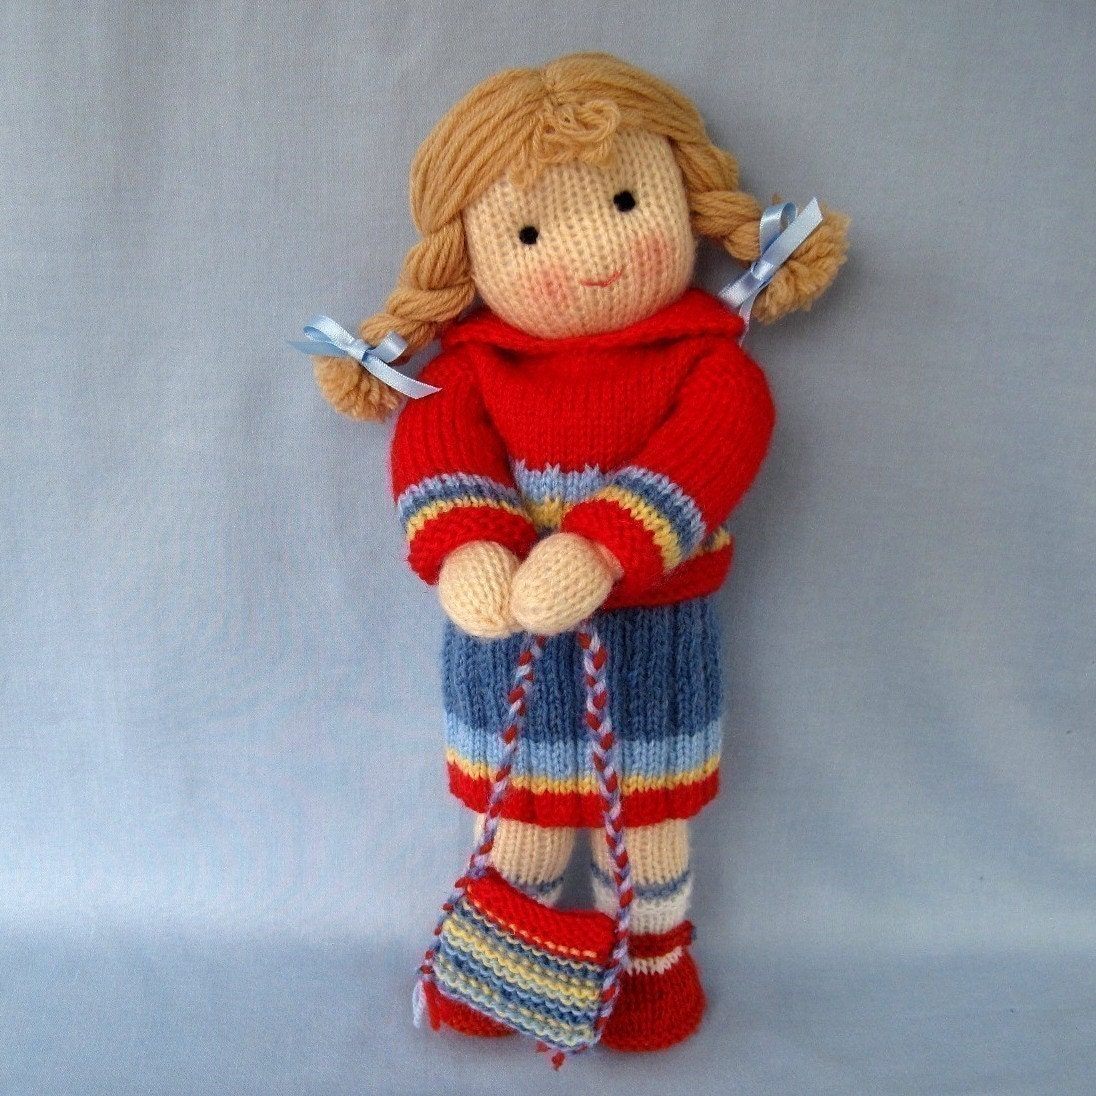 Knitting Patterns For Toys On Etsy : Tilly doll knitting pattern INSTANT DOWNLOAD by dollytime on Etsy